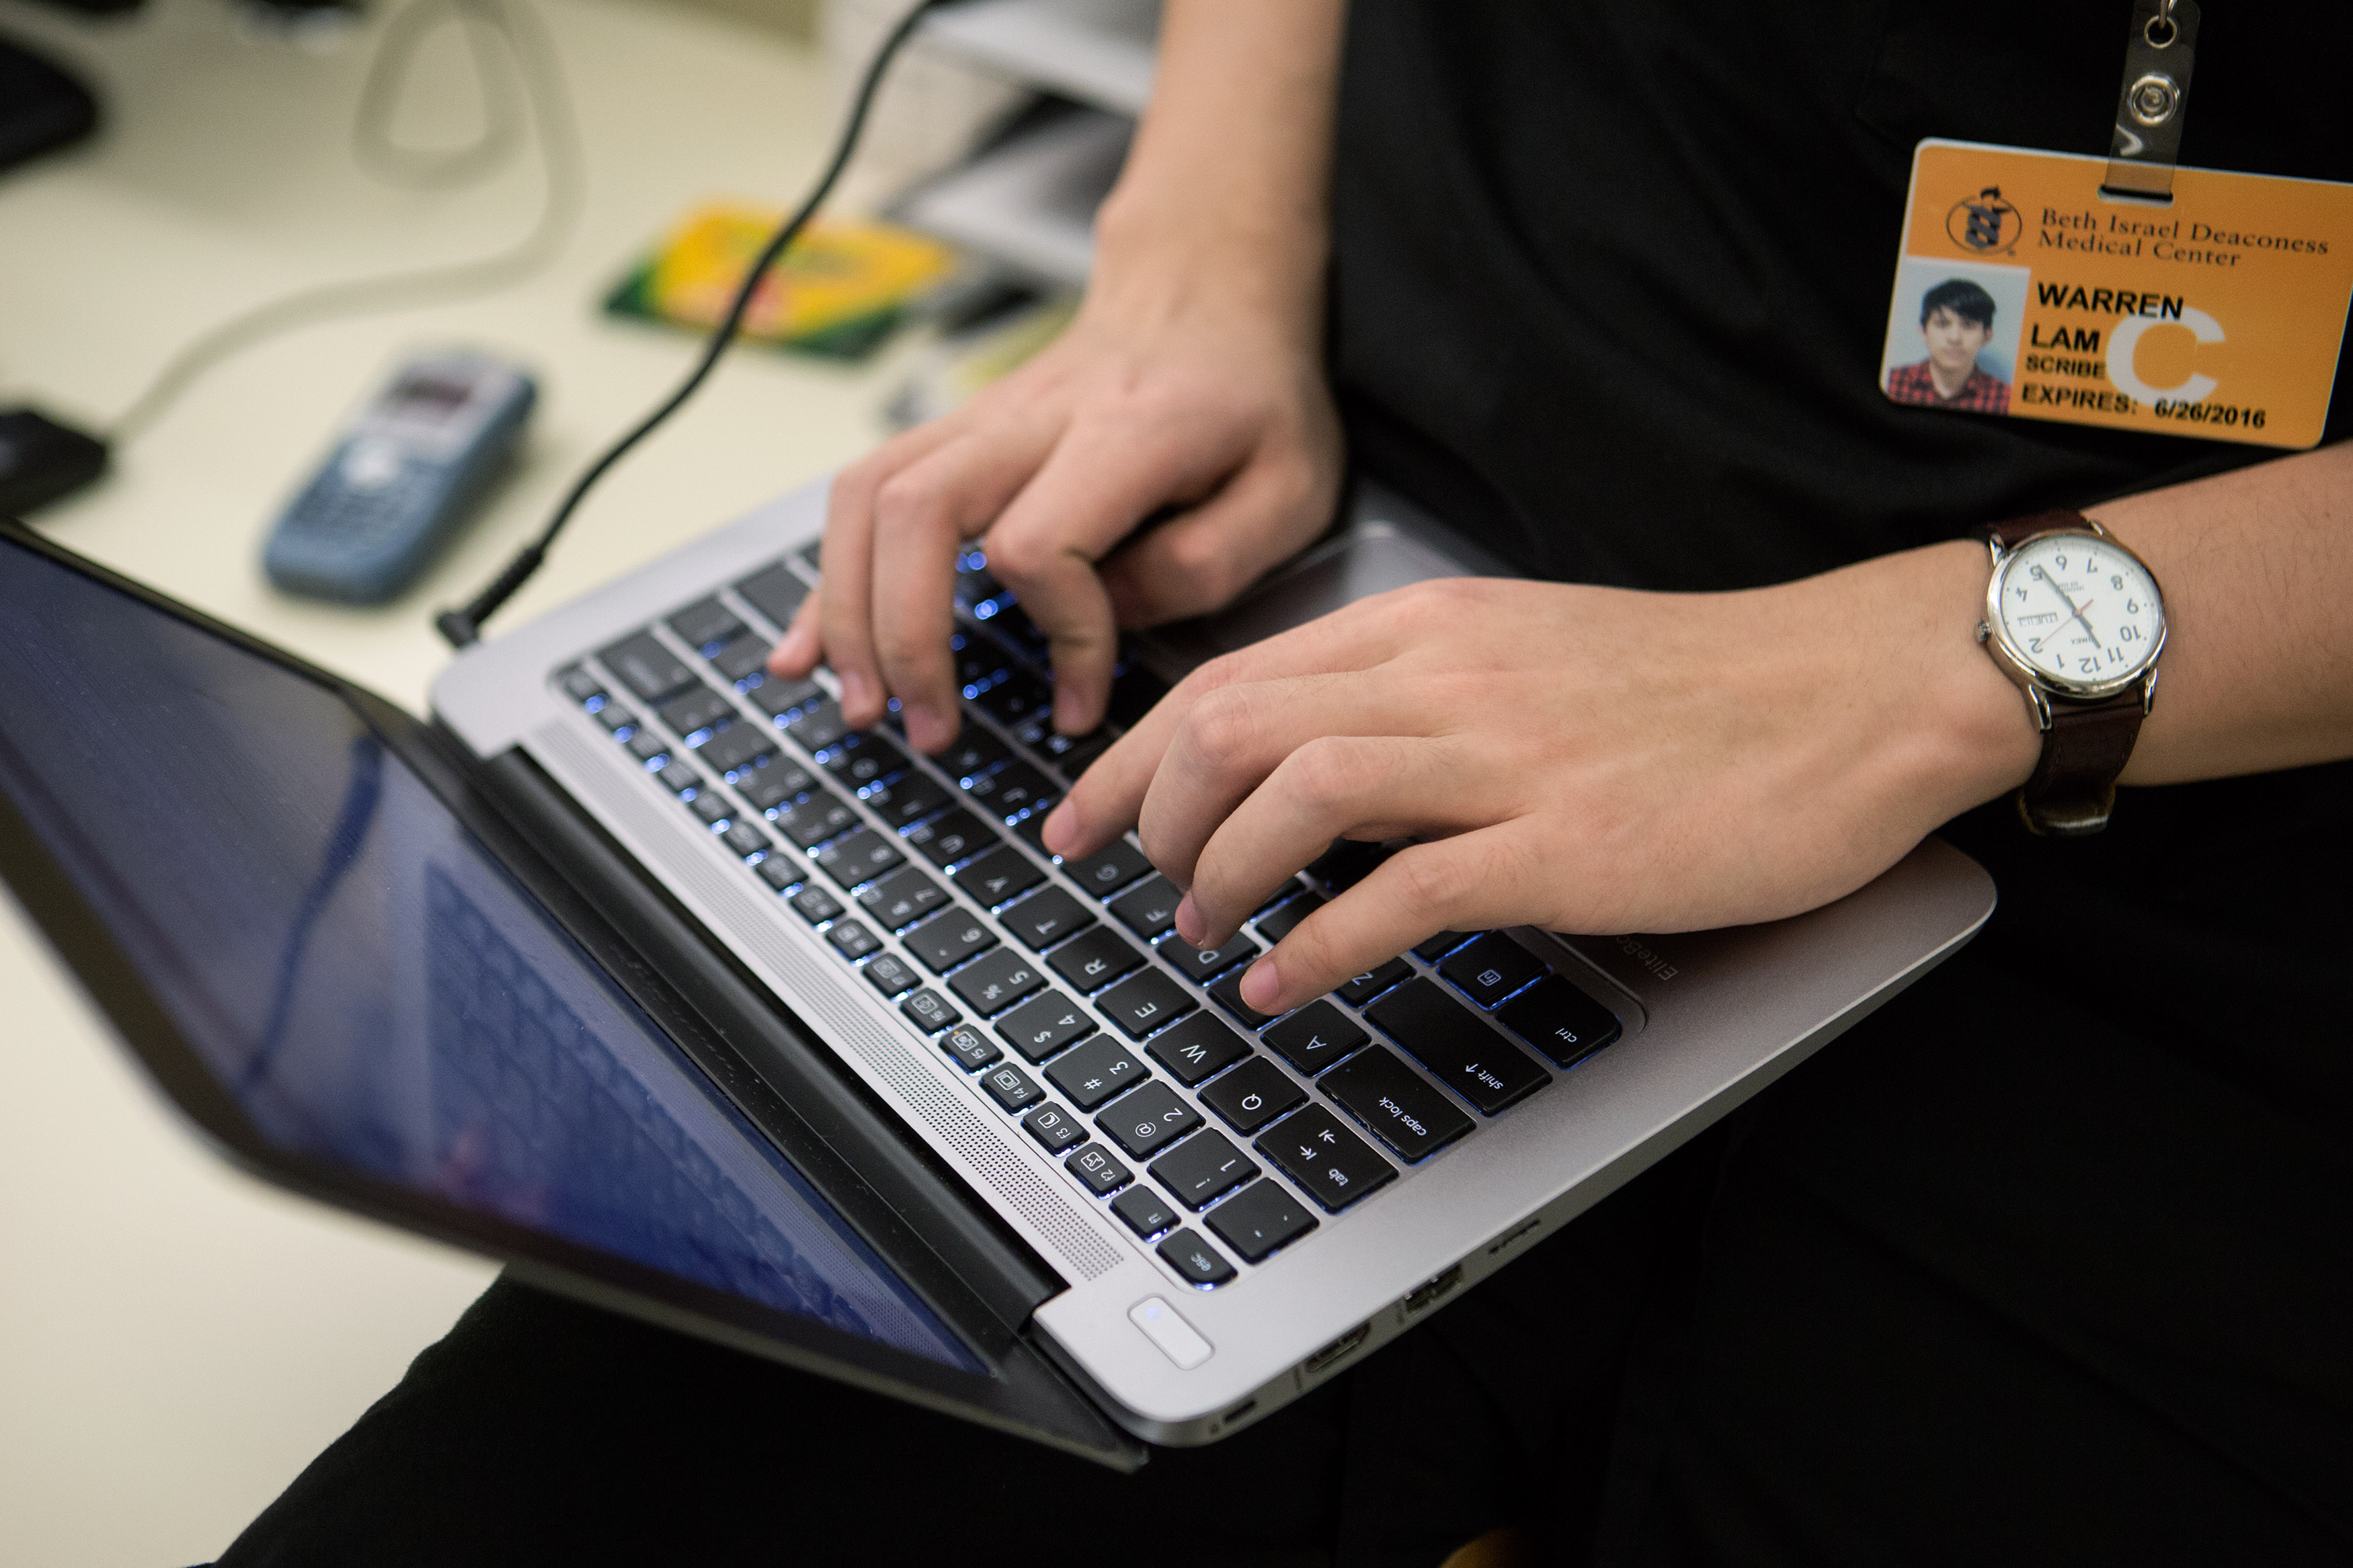 Scribes can help transform health care by creating better clinical data